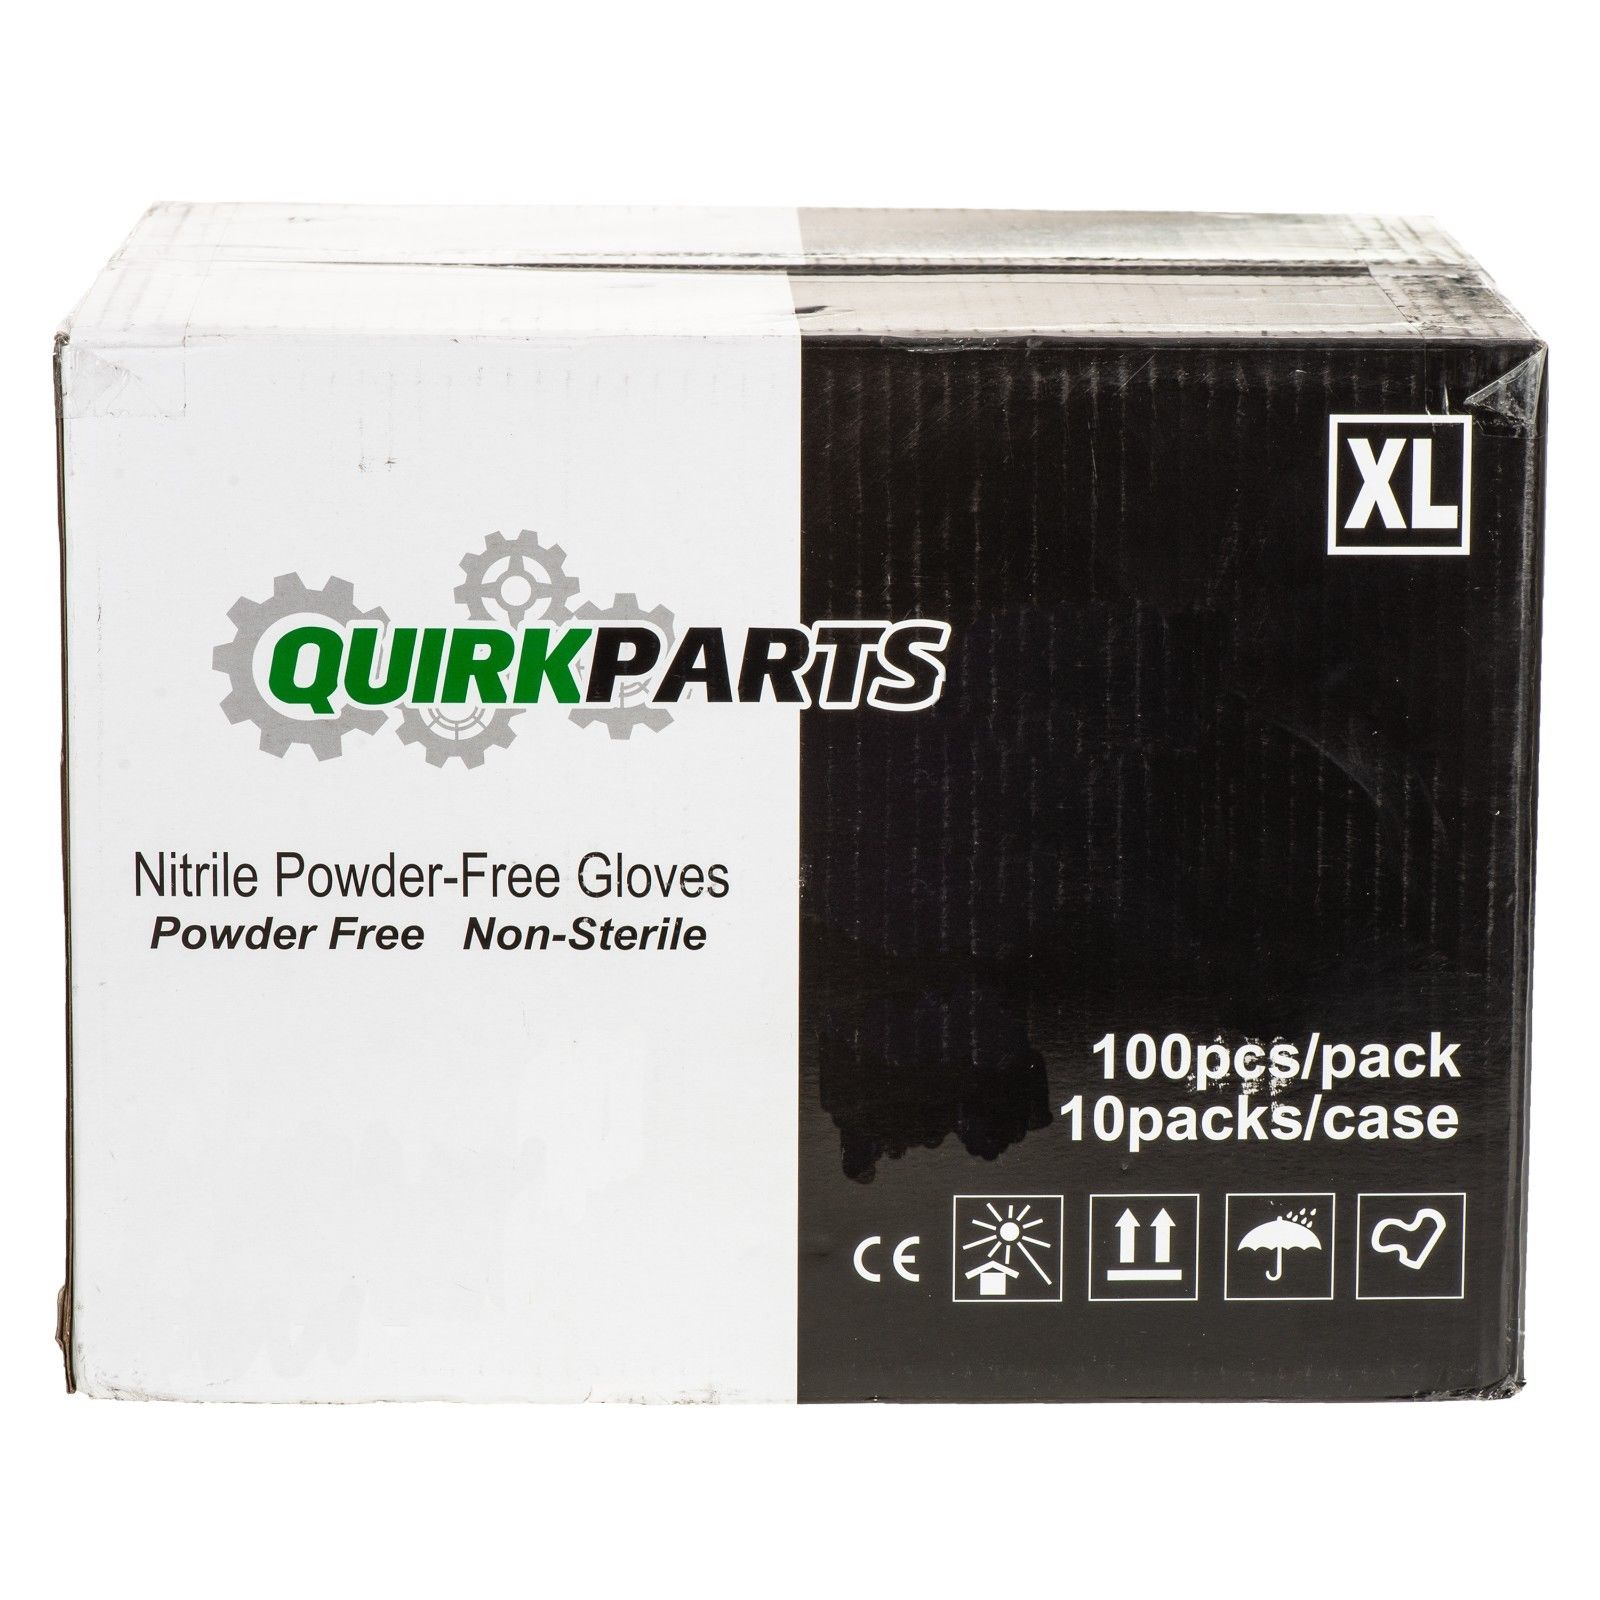 ONE NEW Case Of 1000 Blue Nitrile Powder Free Disposable Non-Sterile XL Gloves